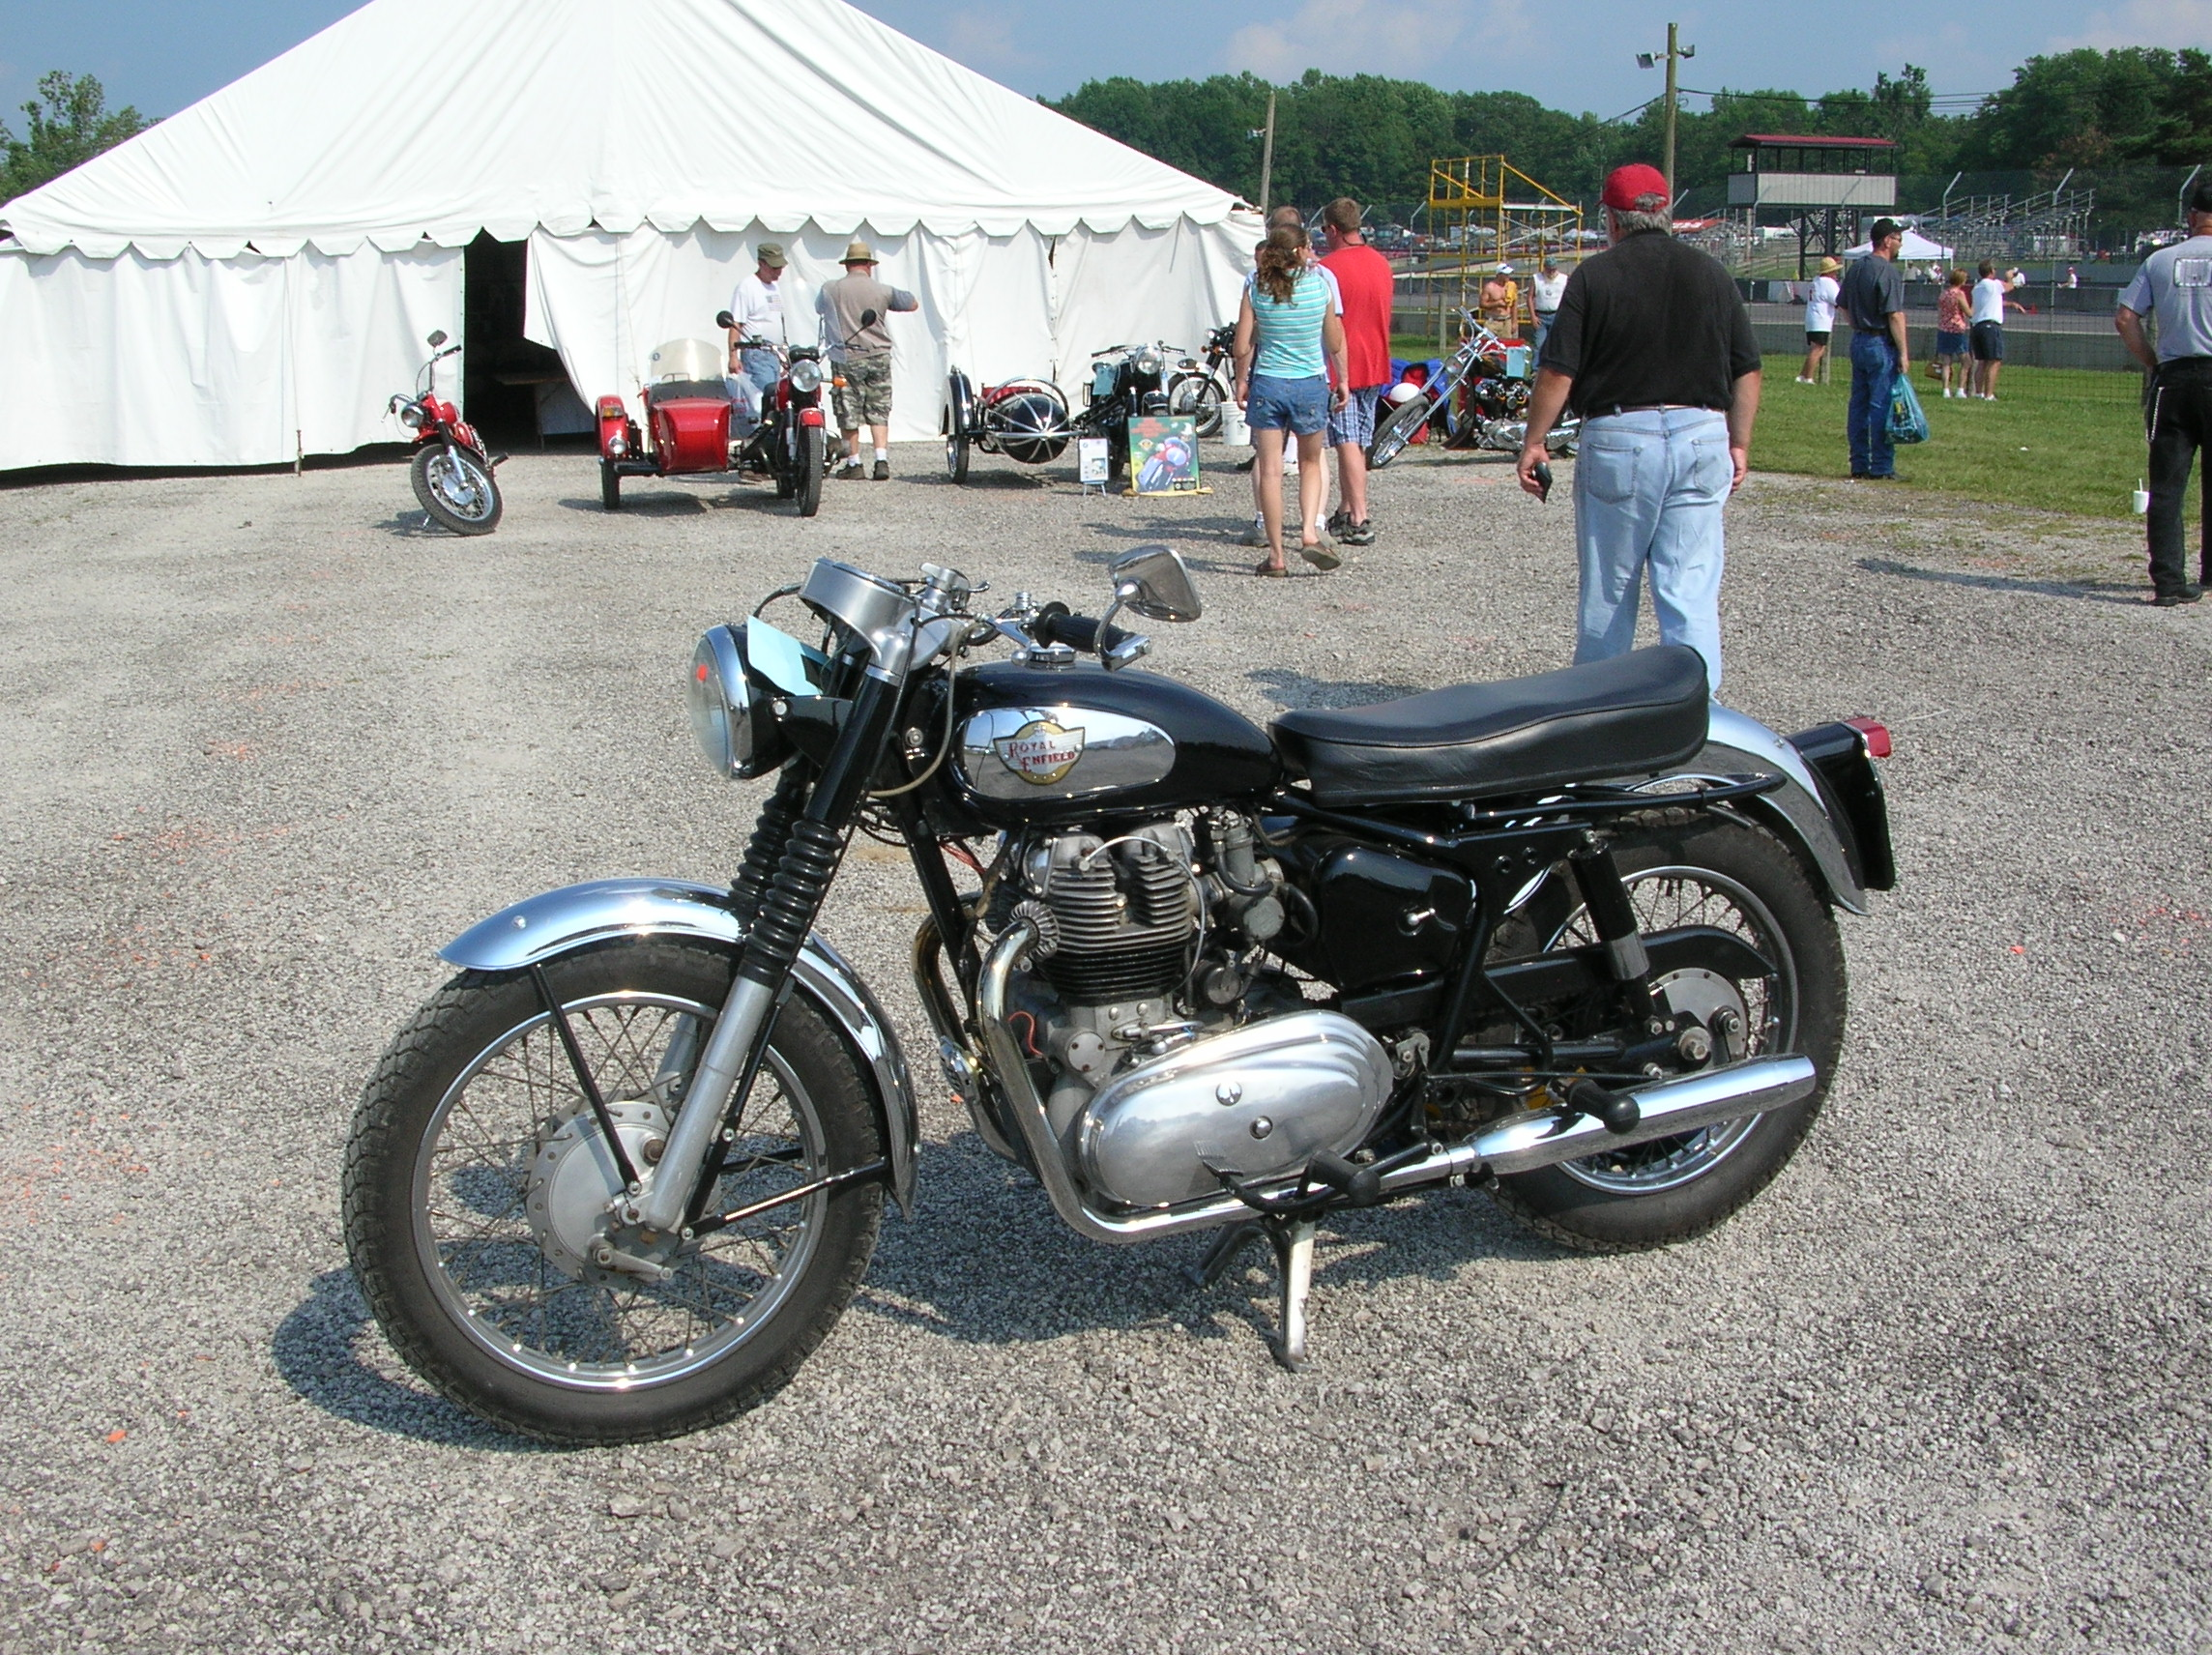 Royal Enfield Bullet 500 Army 2006 images #123600